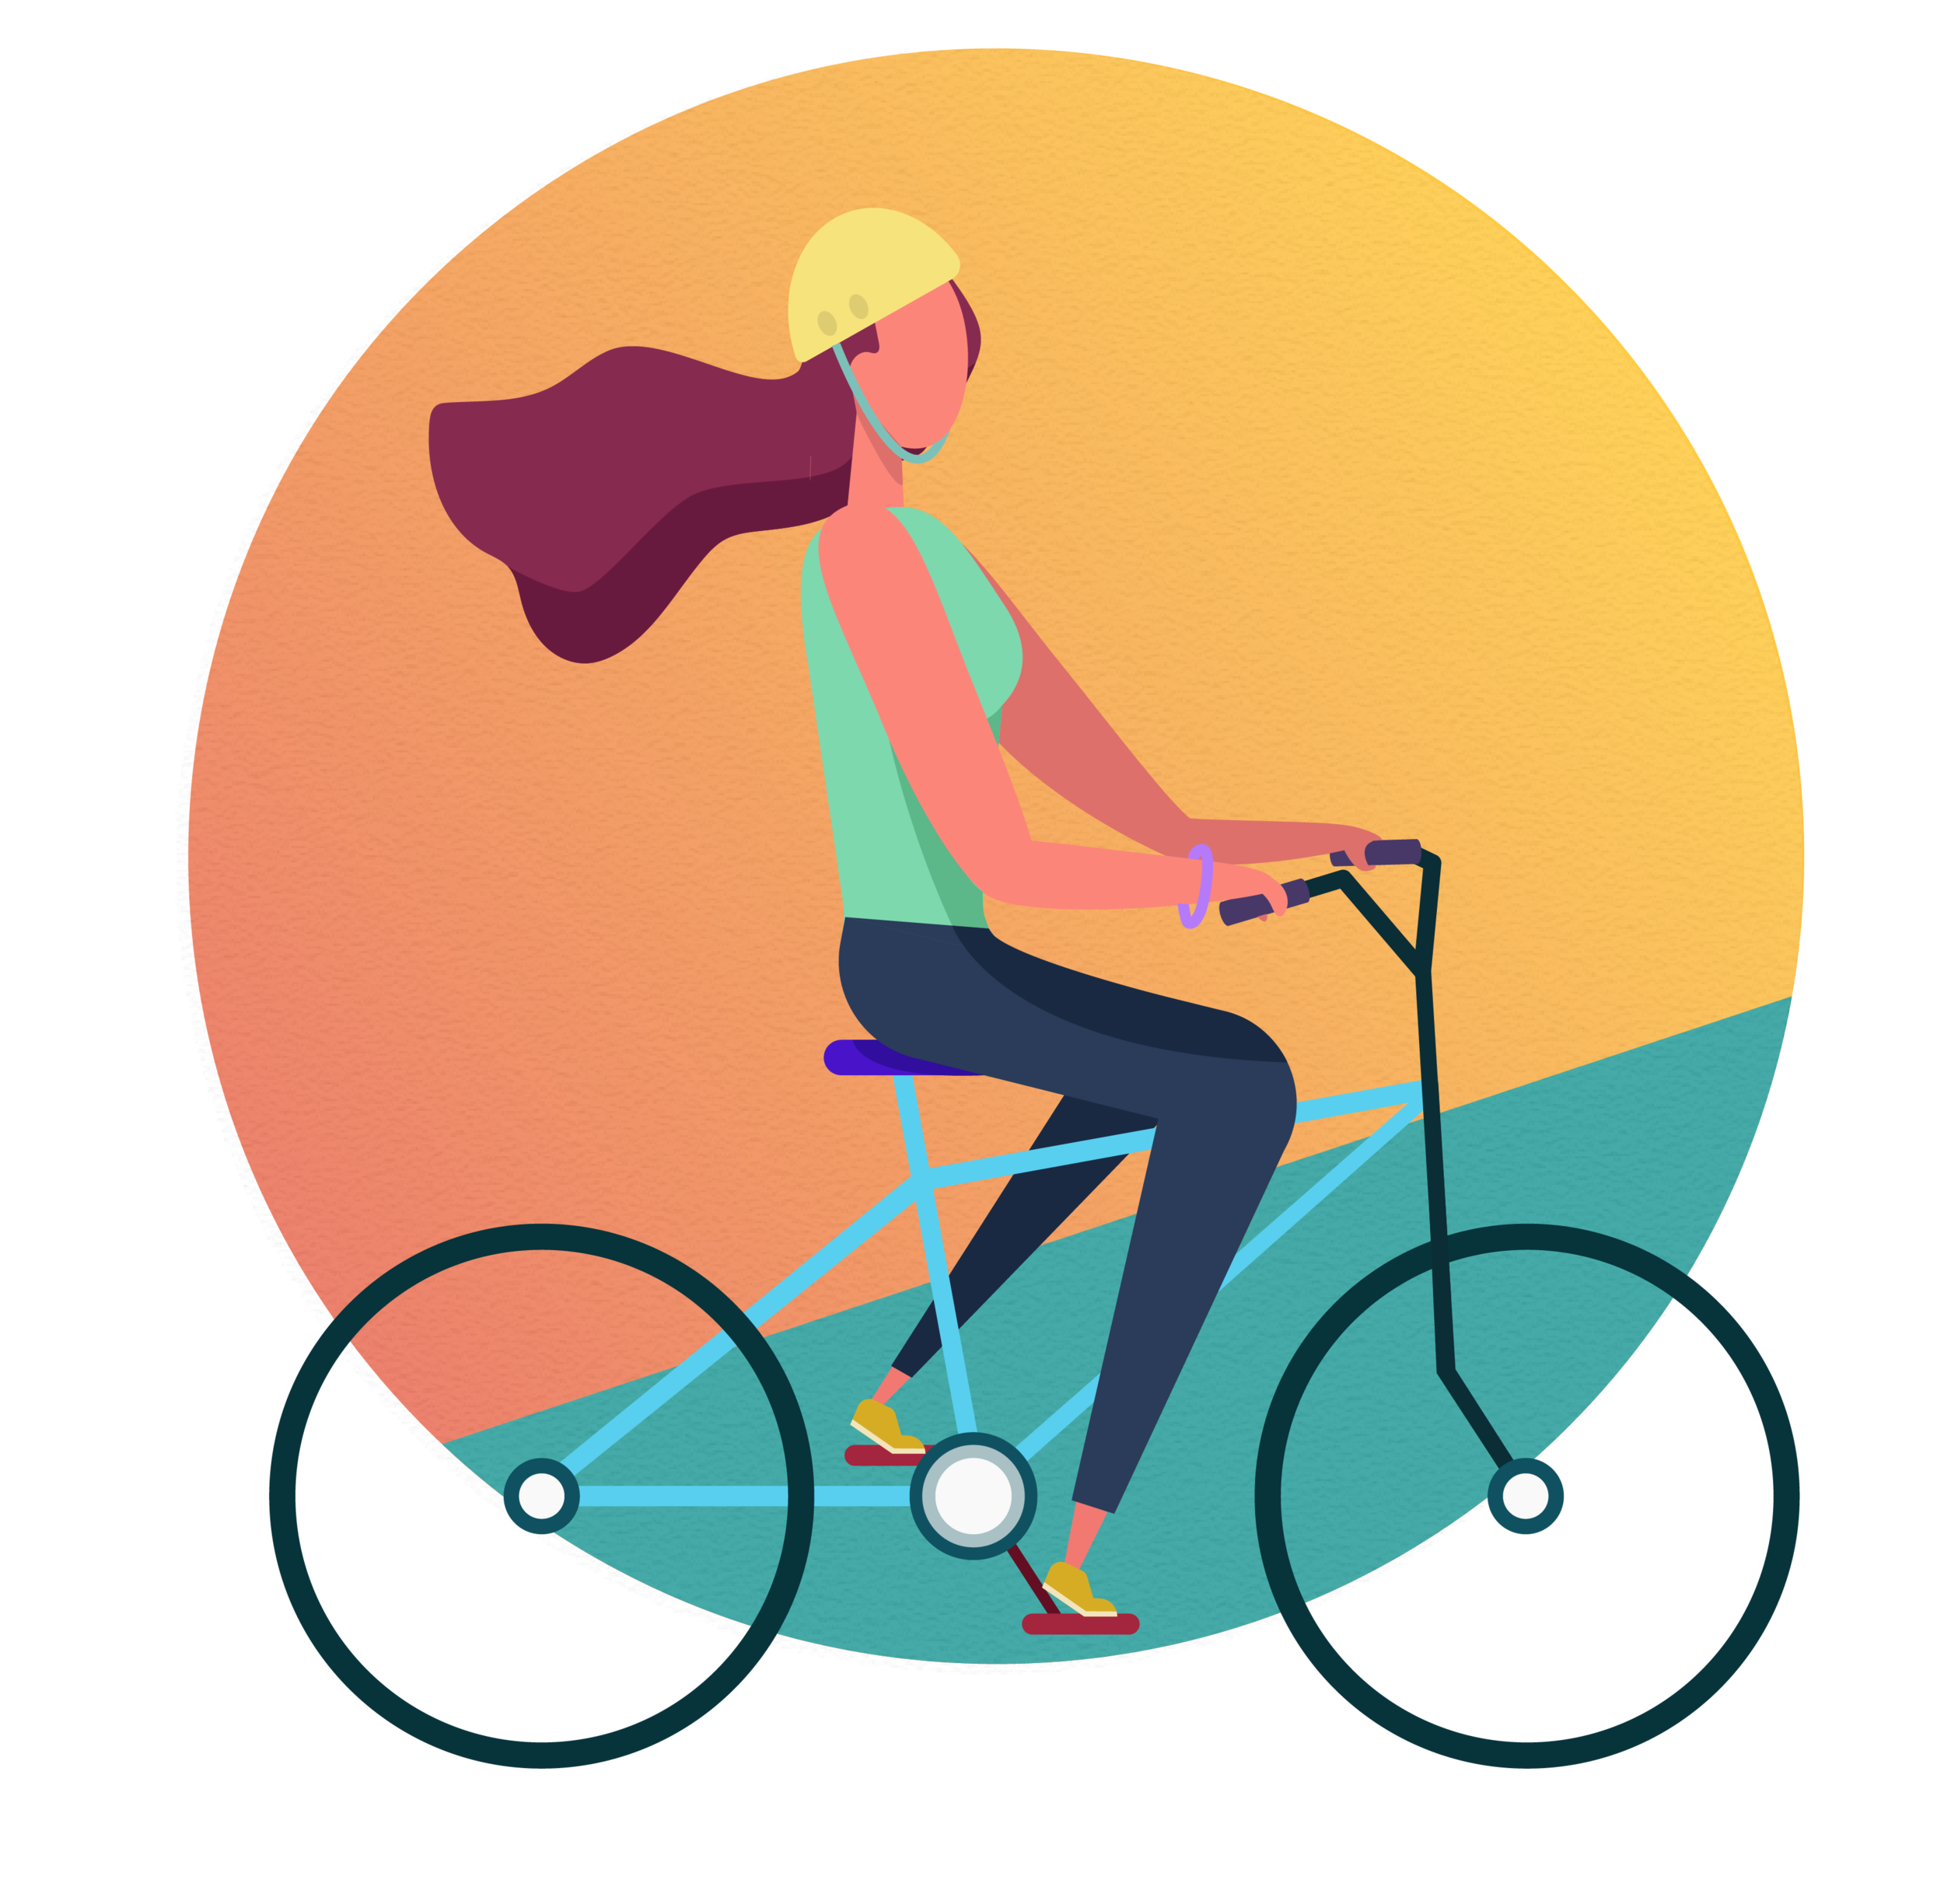 person-illustration-womanonbike-05.png